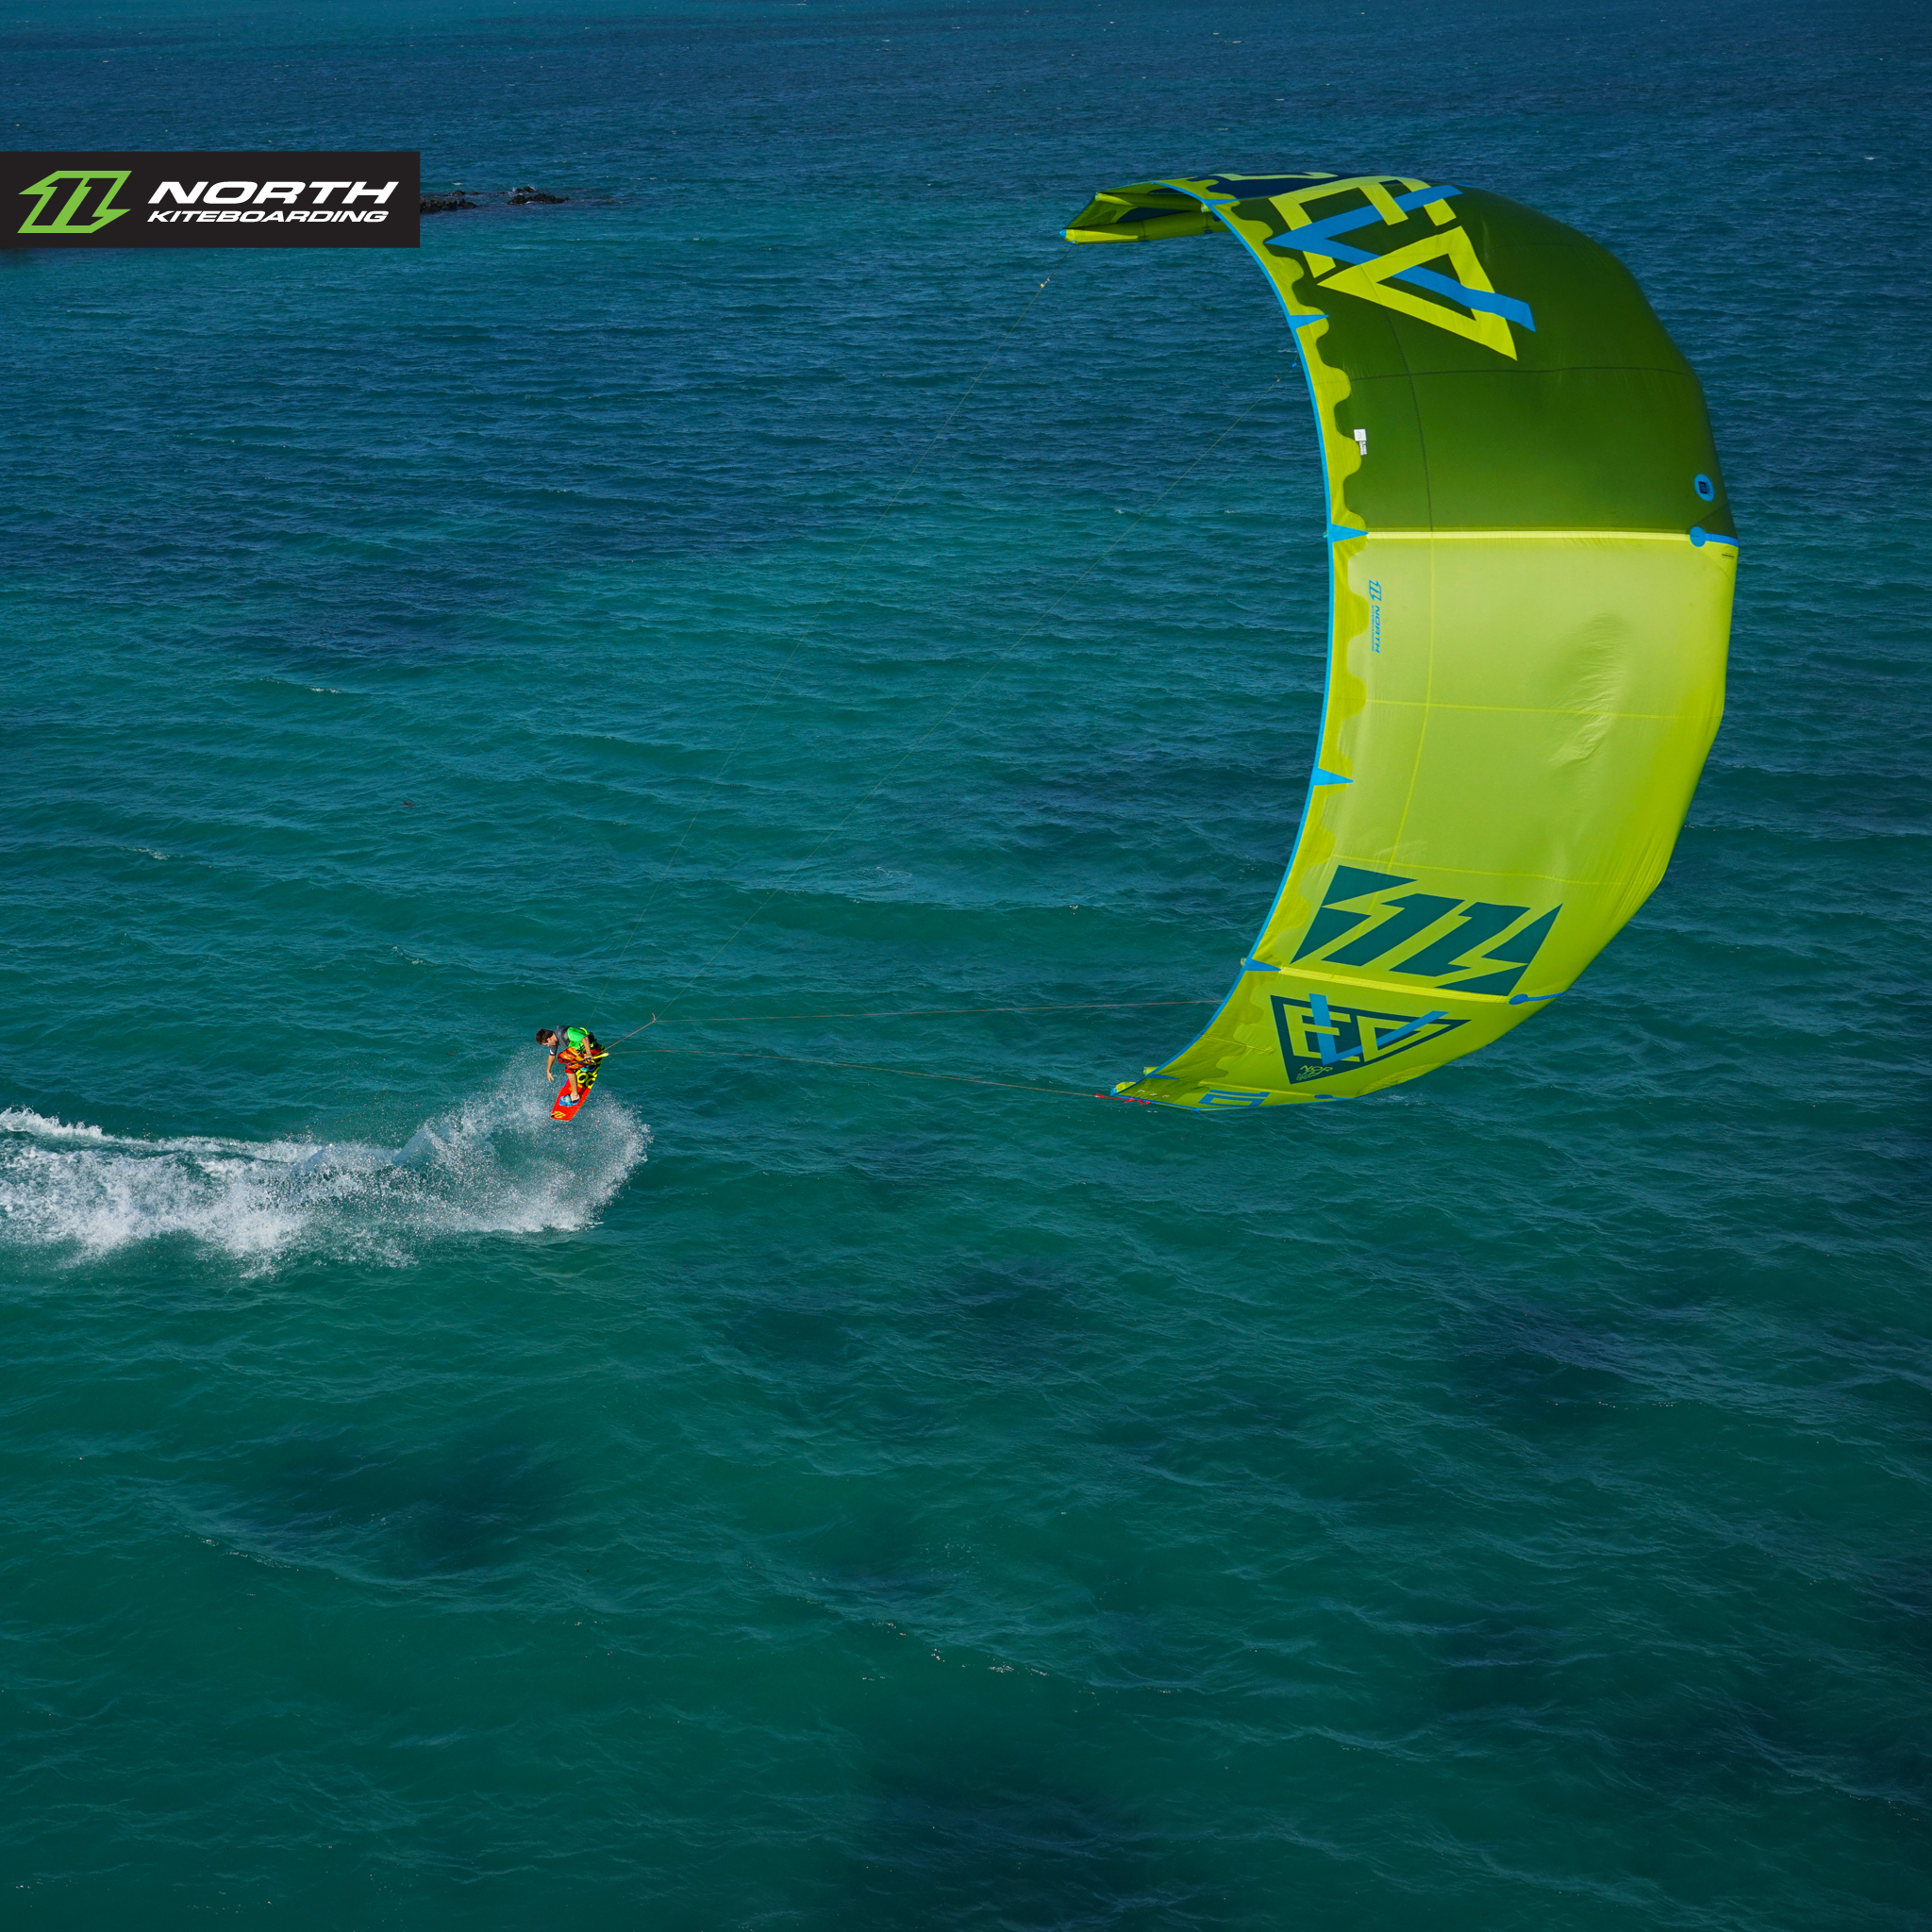 kitesurf wallpaper image - The 2015 North Evo as seen from above - kitesurfing - in resolution: iPad 2 & 3 2048 X 2048